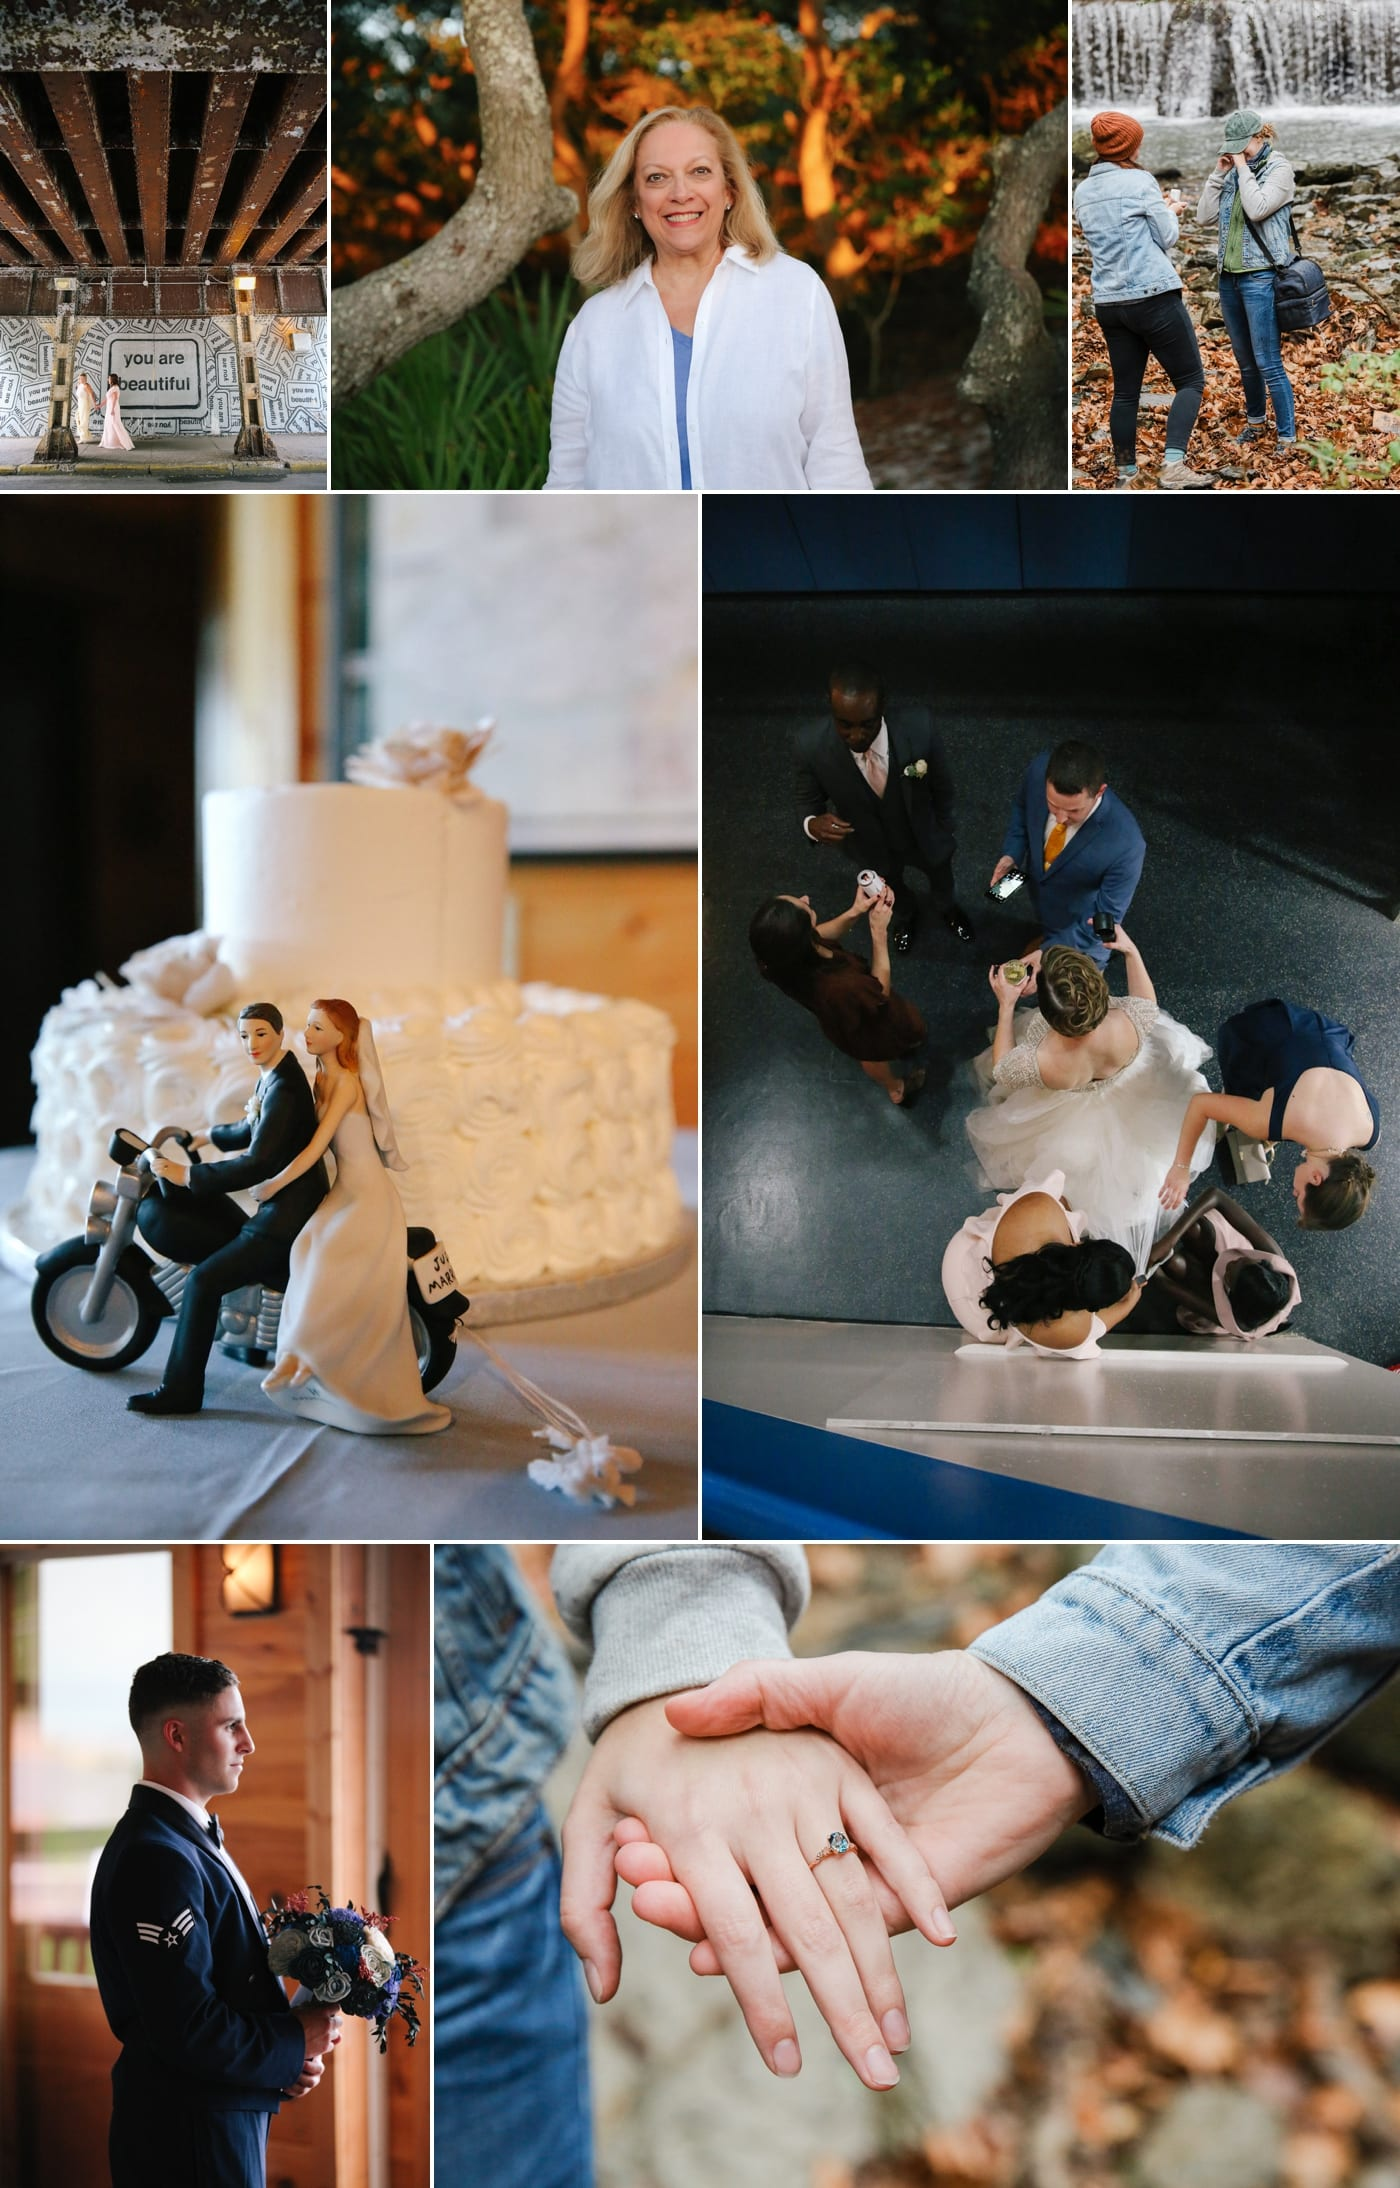 Wedding cake topper with a bride and groom on a motorcycle